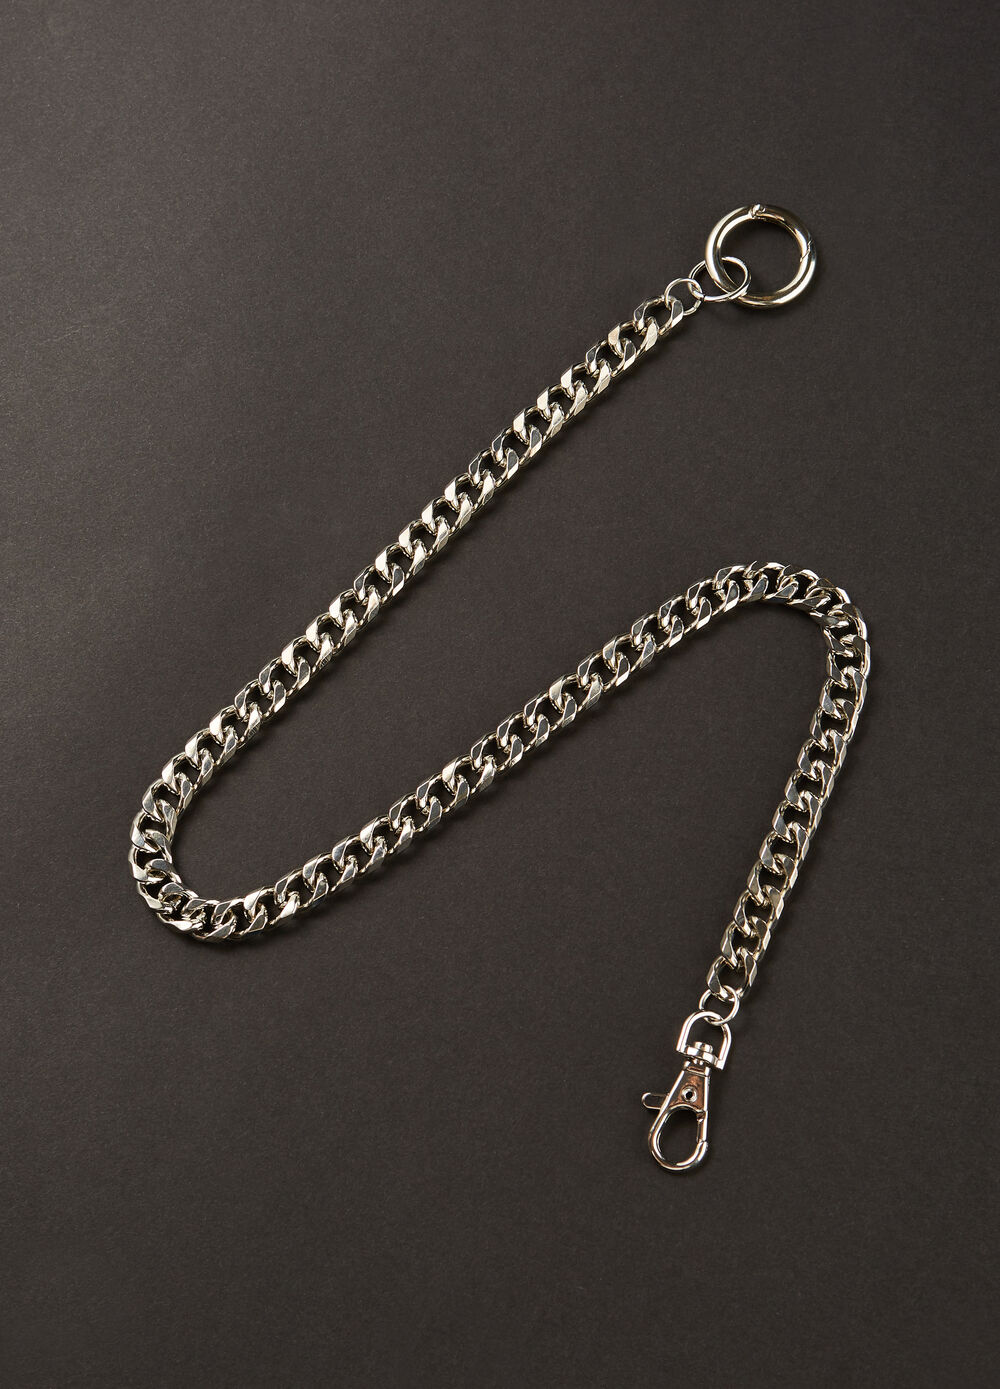 Metal keyring with chain